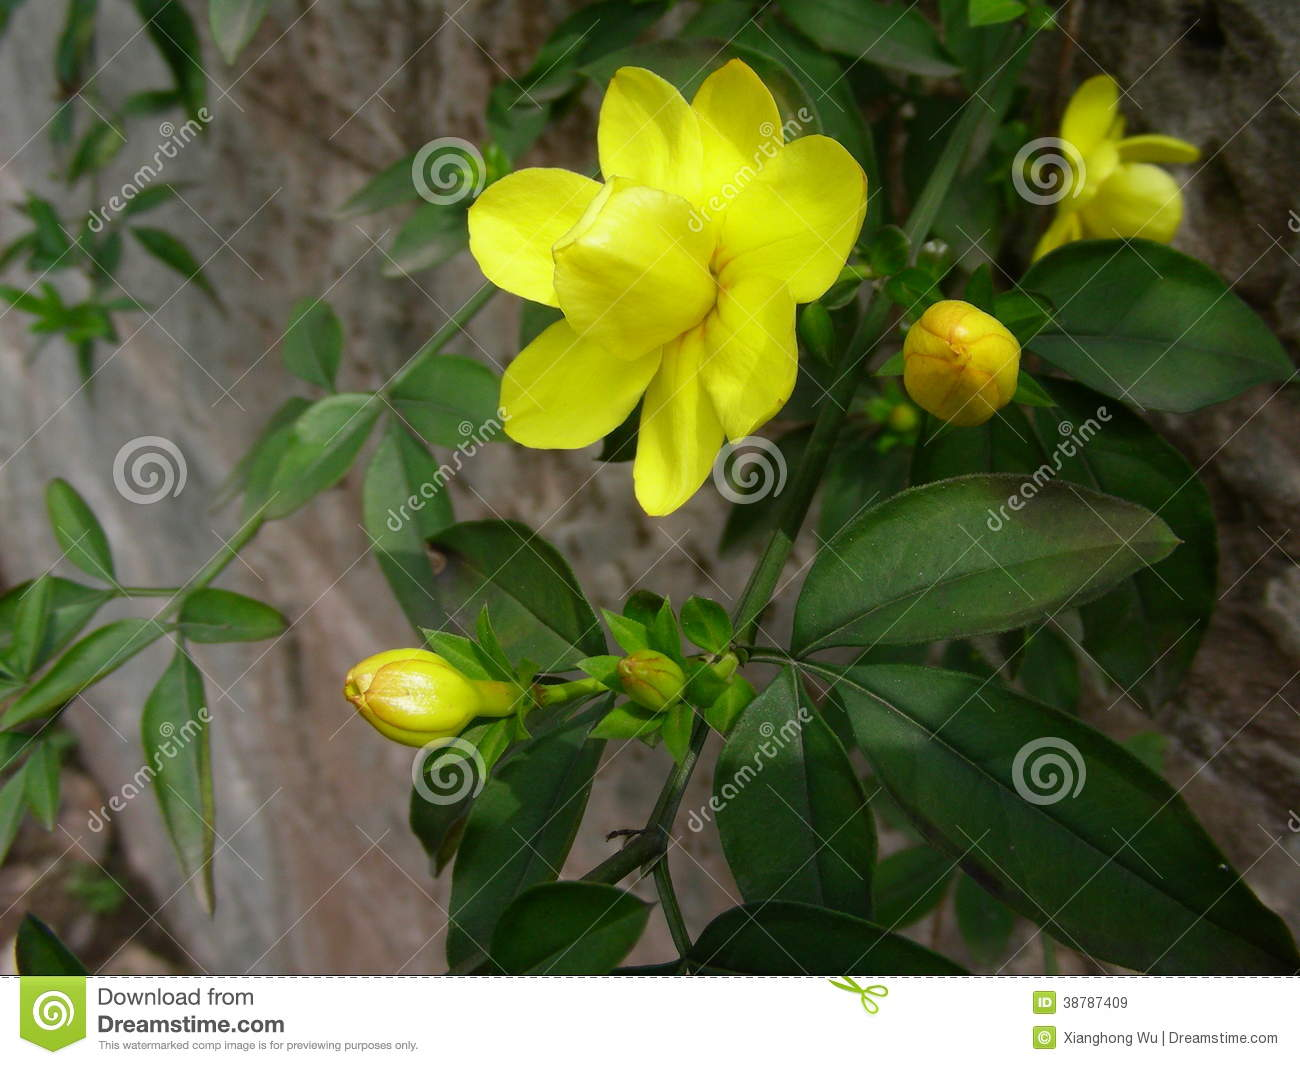 Winter jasmine with yellow flowers stock image image of closeup winter jasmine with yellow flowers izmirmasajfo